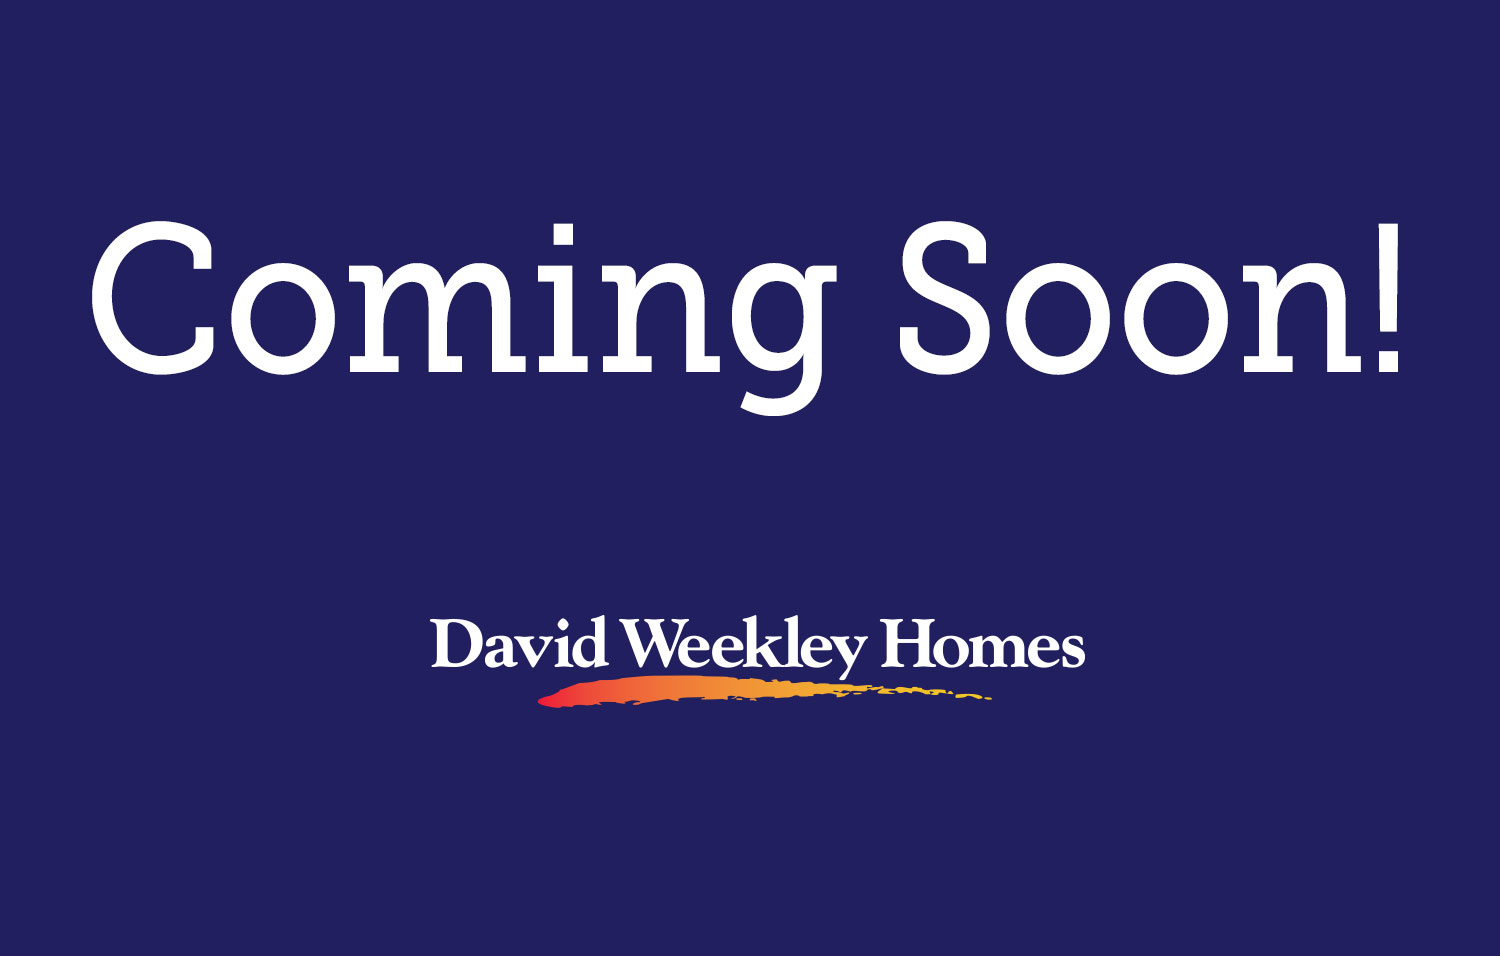 Thomas Place Cottages - Coming Soon